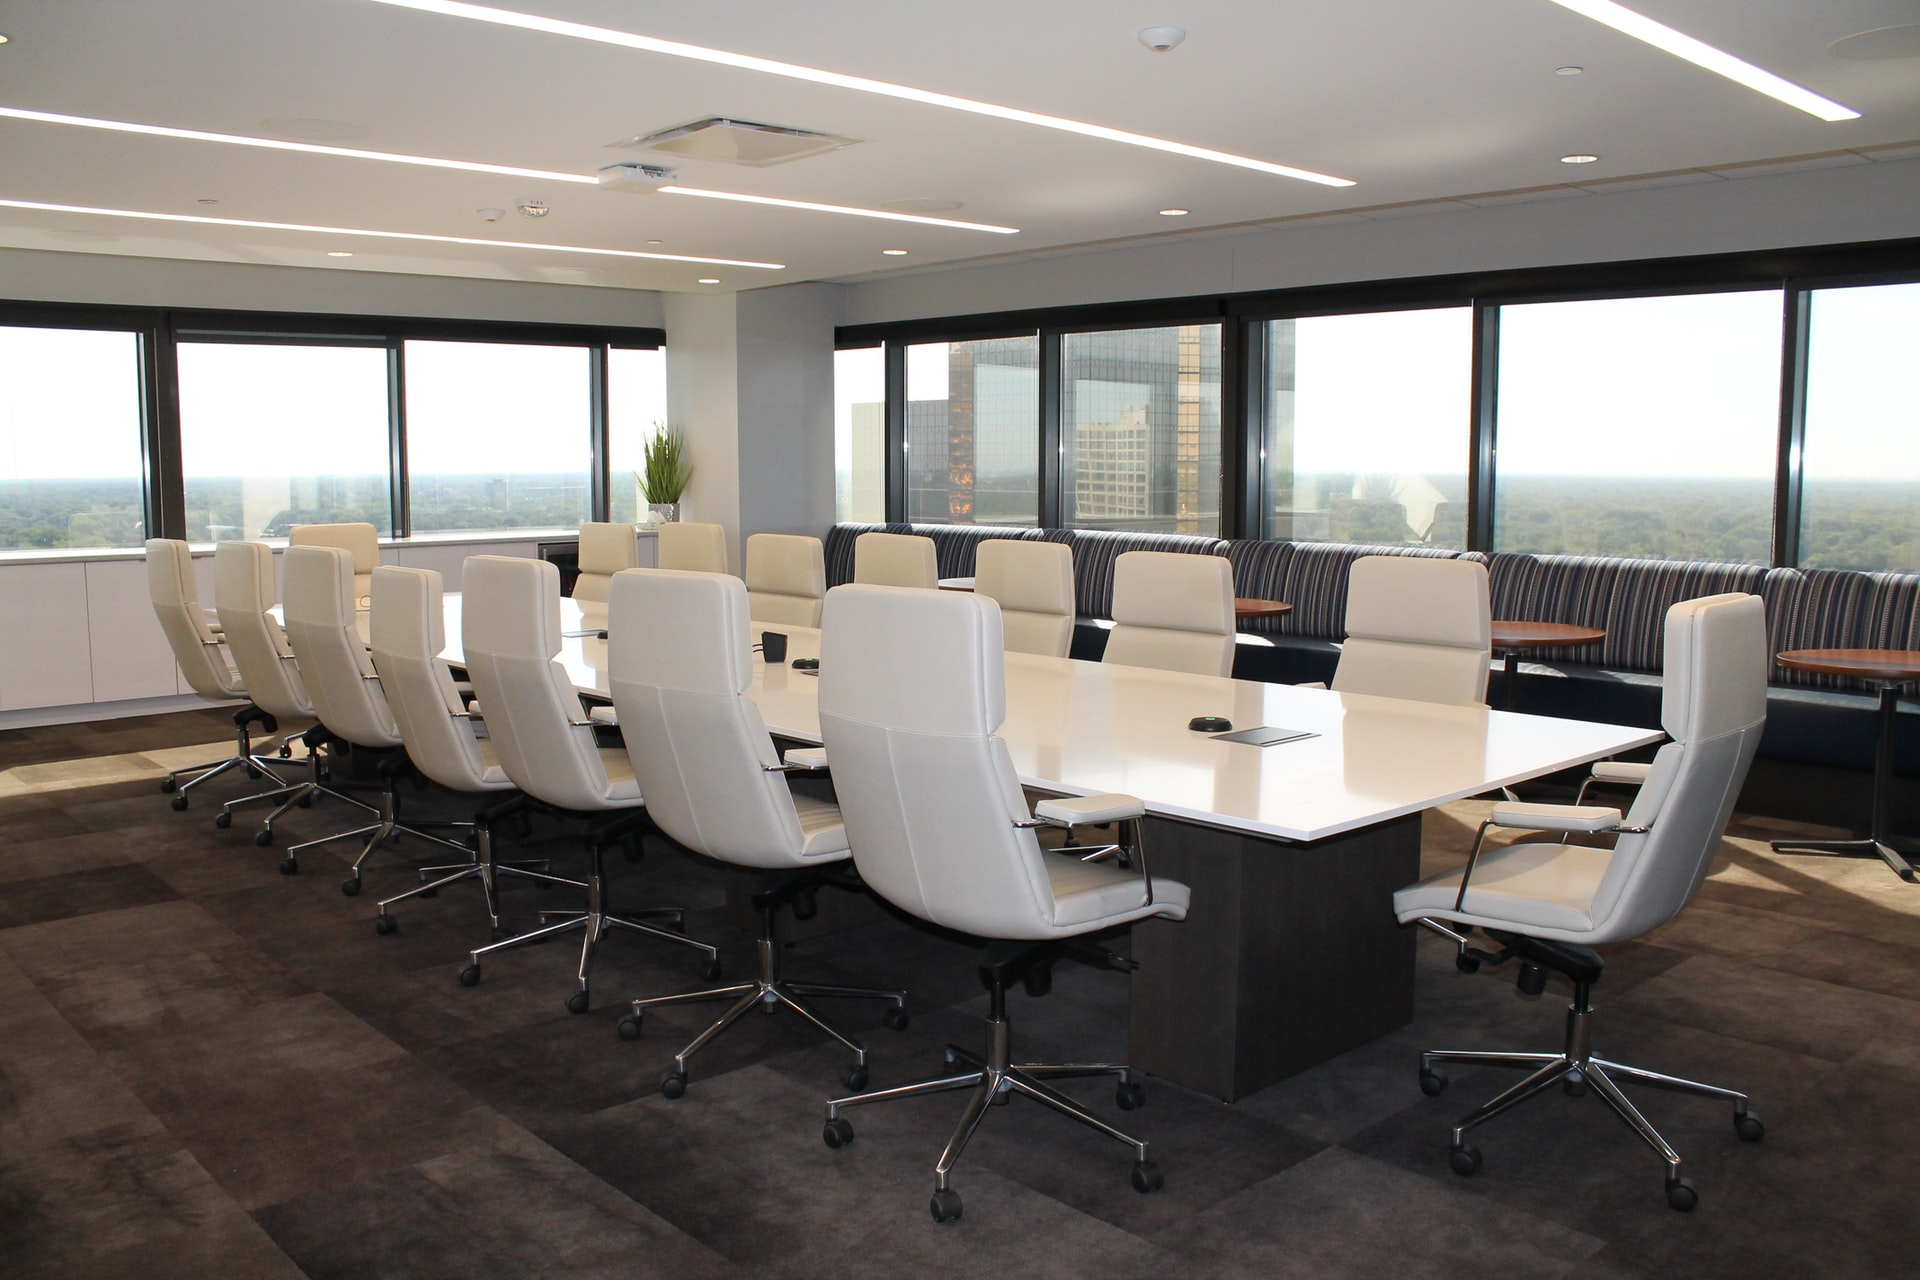 Maintaining the profitability of boardrooms is difficult. Photo by @dncerullo via Unsplash.